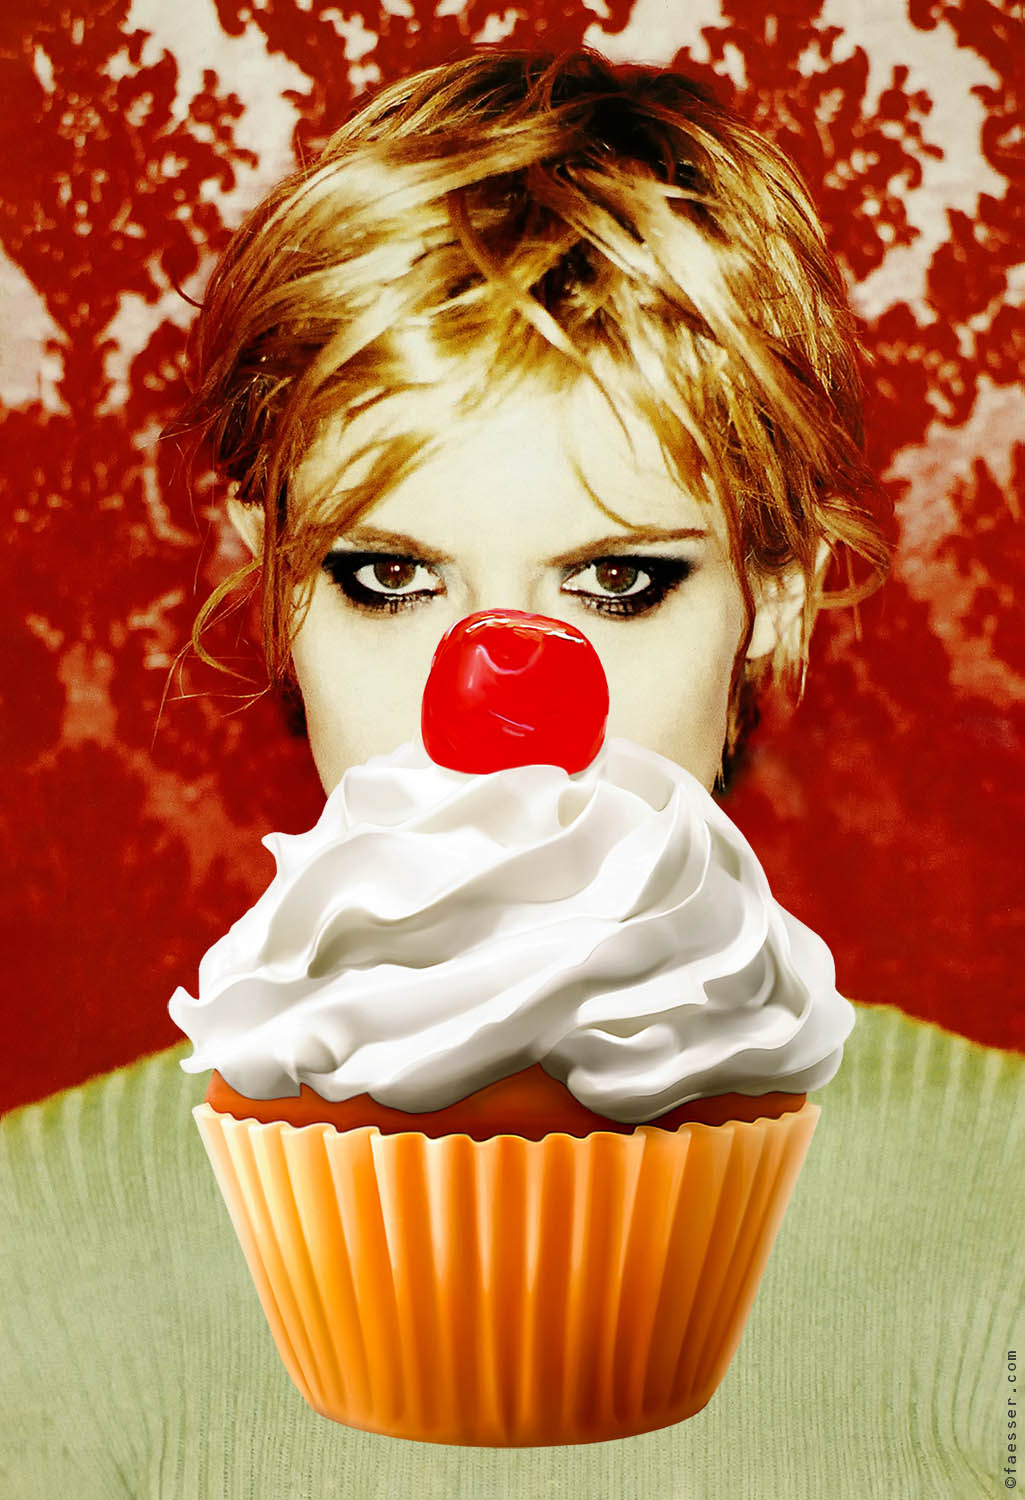 Female portrait with large cupcake in front; artist Roland Faesser, sculptor and painter 2020